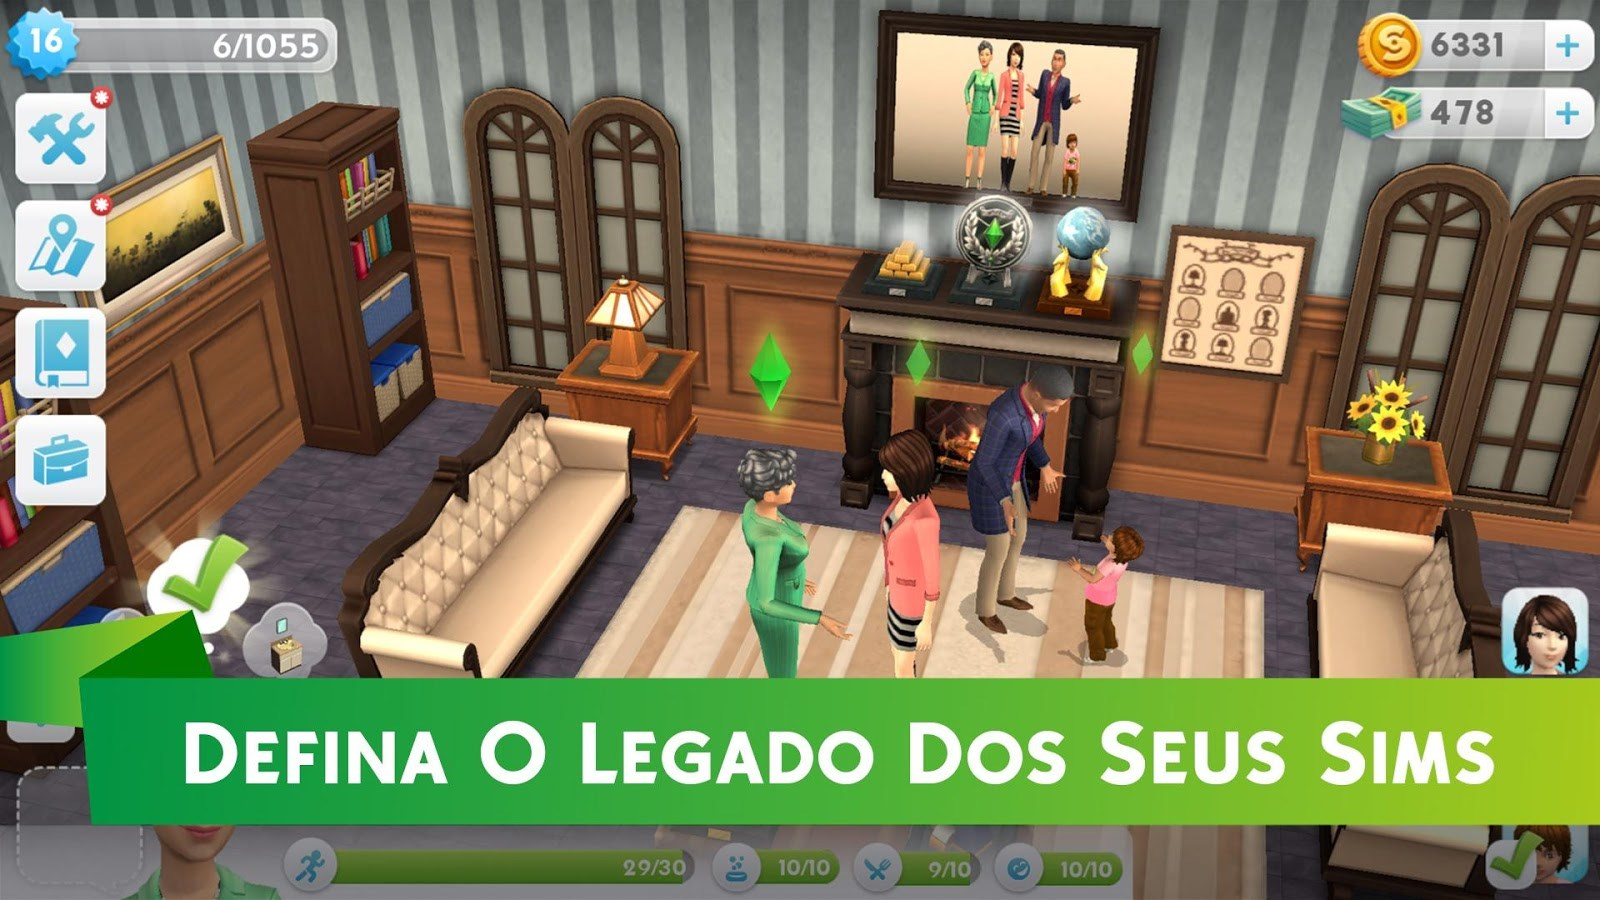 Igt Brasil the sims mobile - 76884